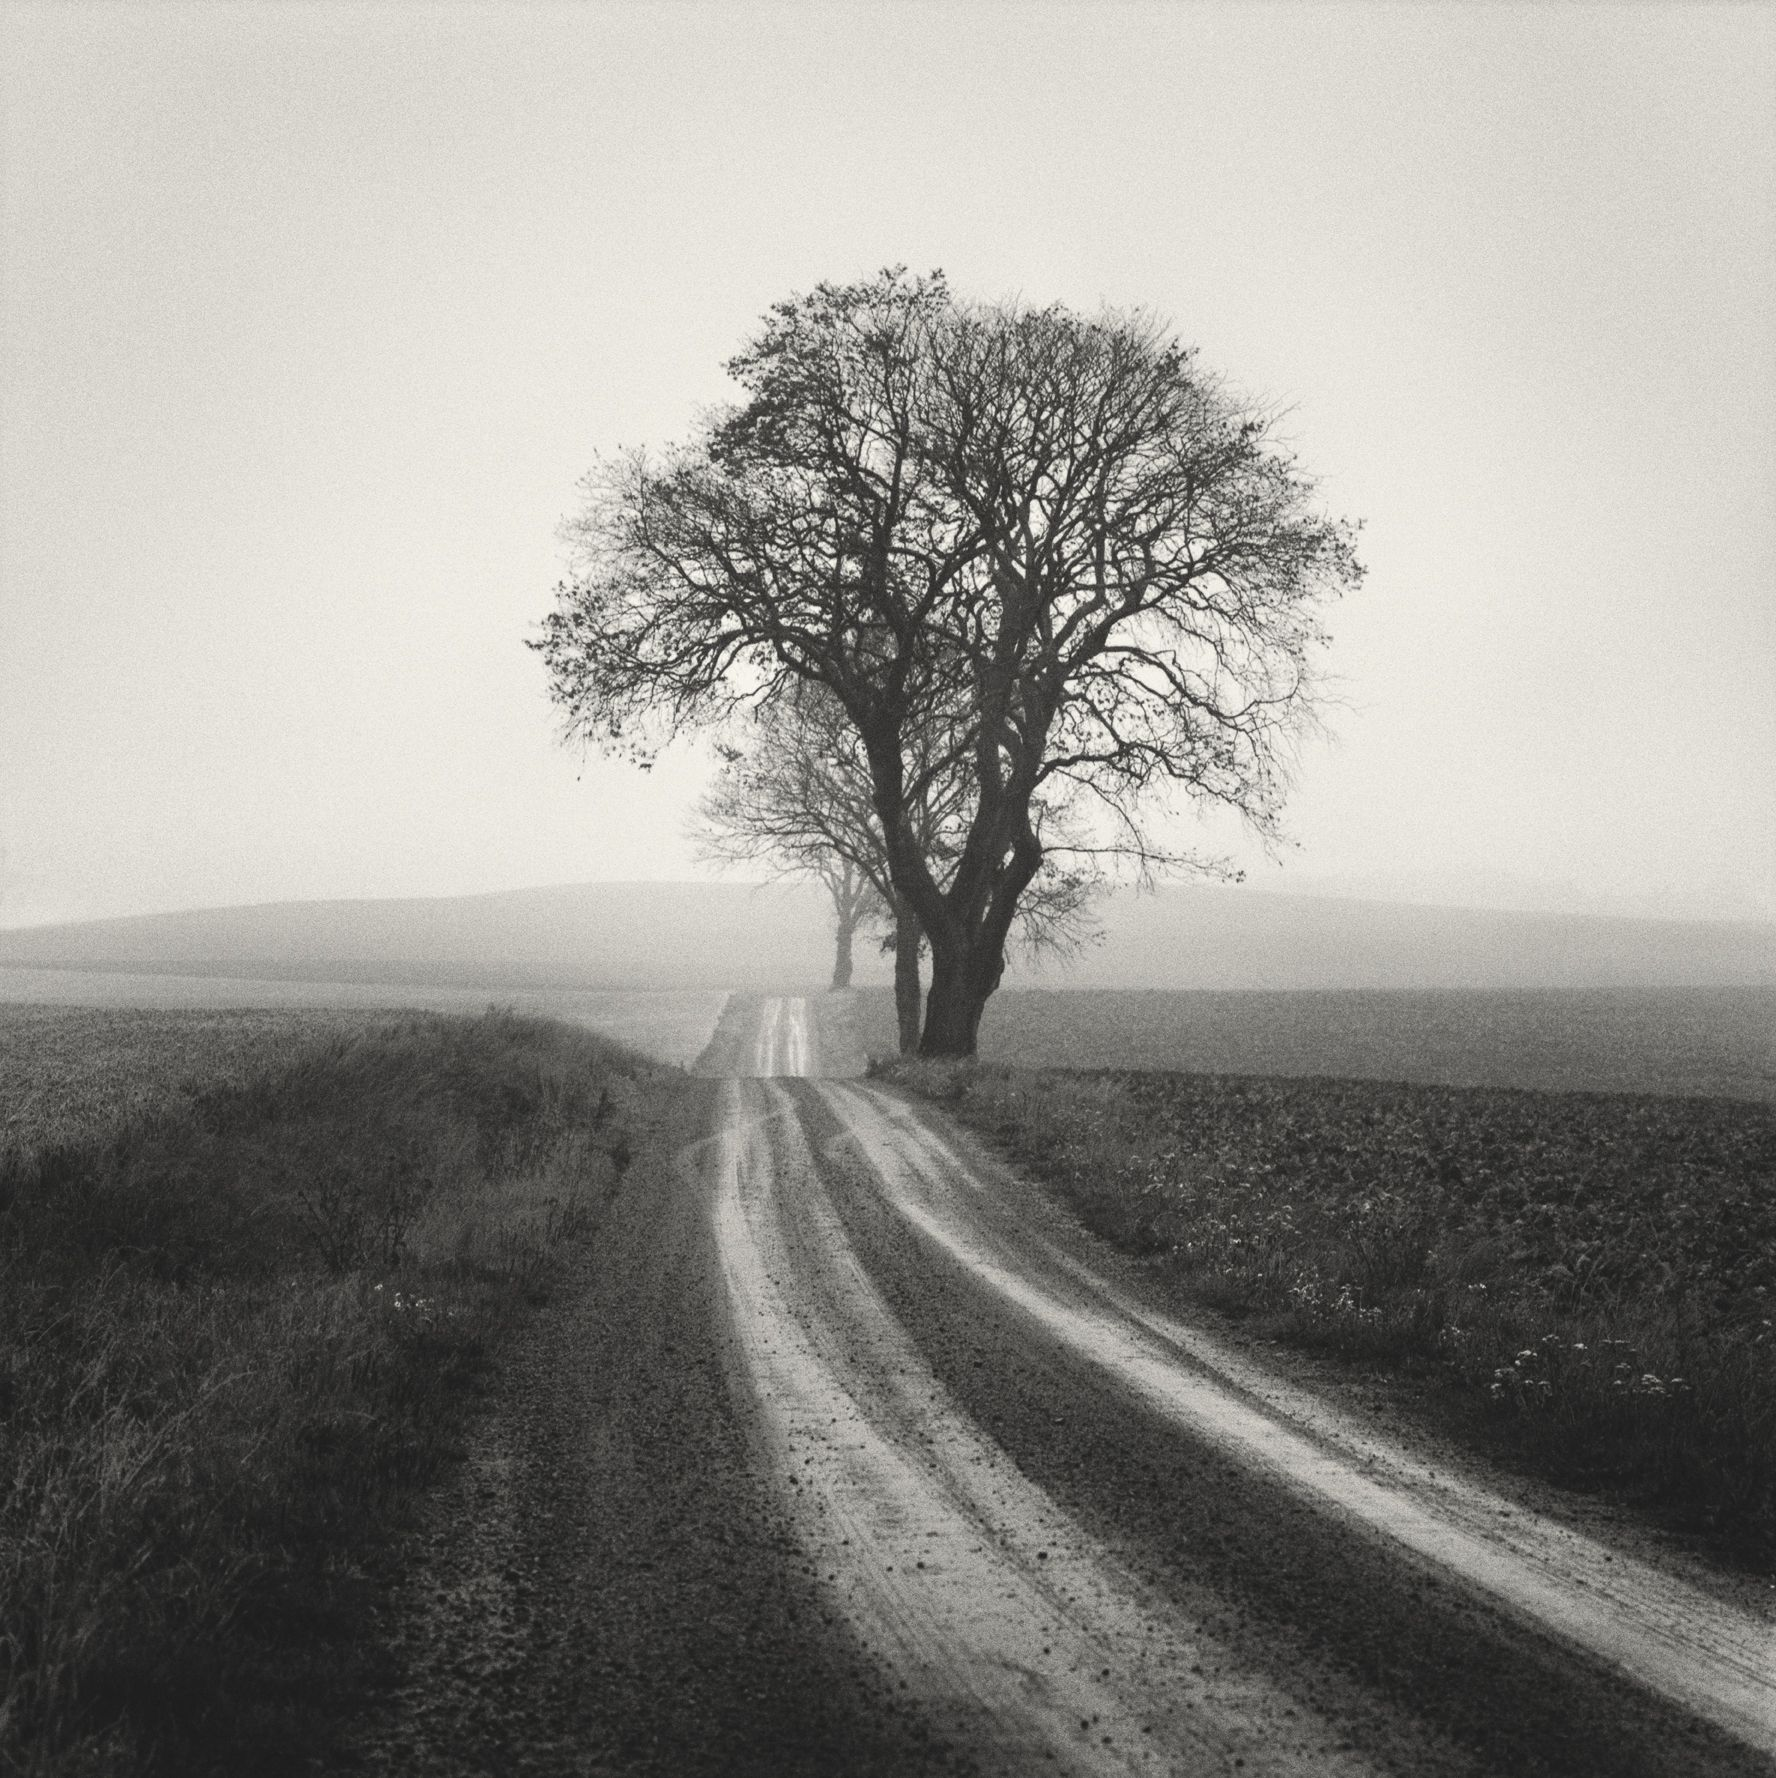 Black And White Analog Photographs Explore The Serenity Of Long Meandering Roads Black And White Landscape Black And White Photography Landscape Photography